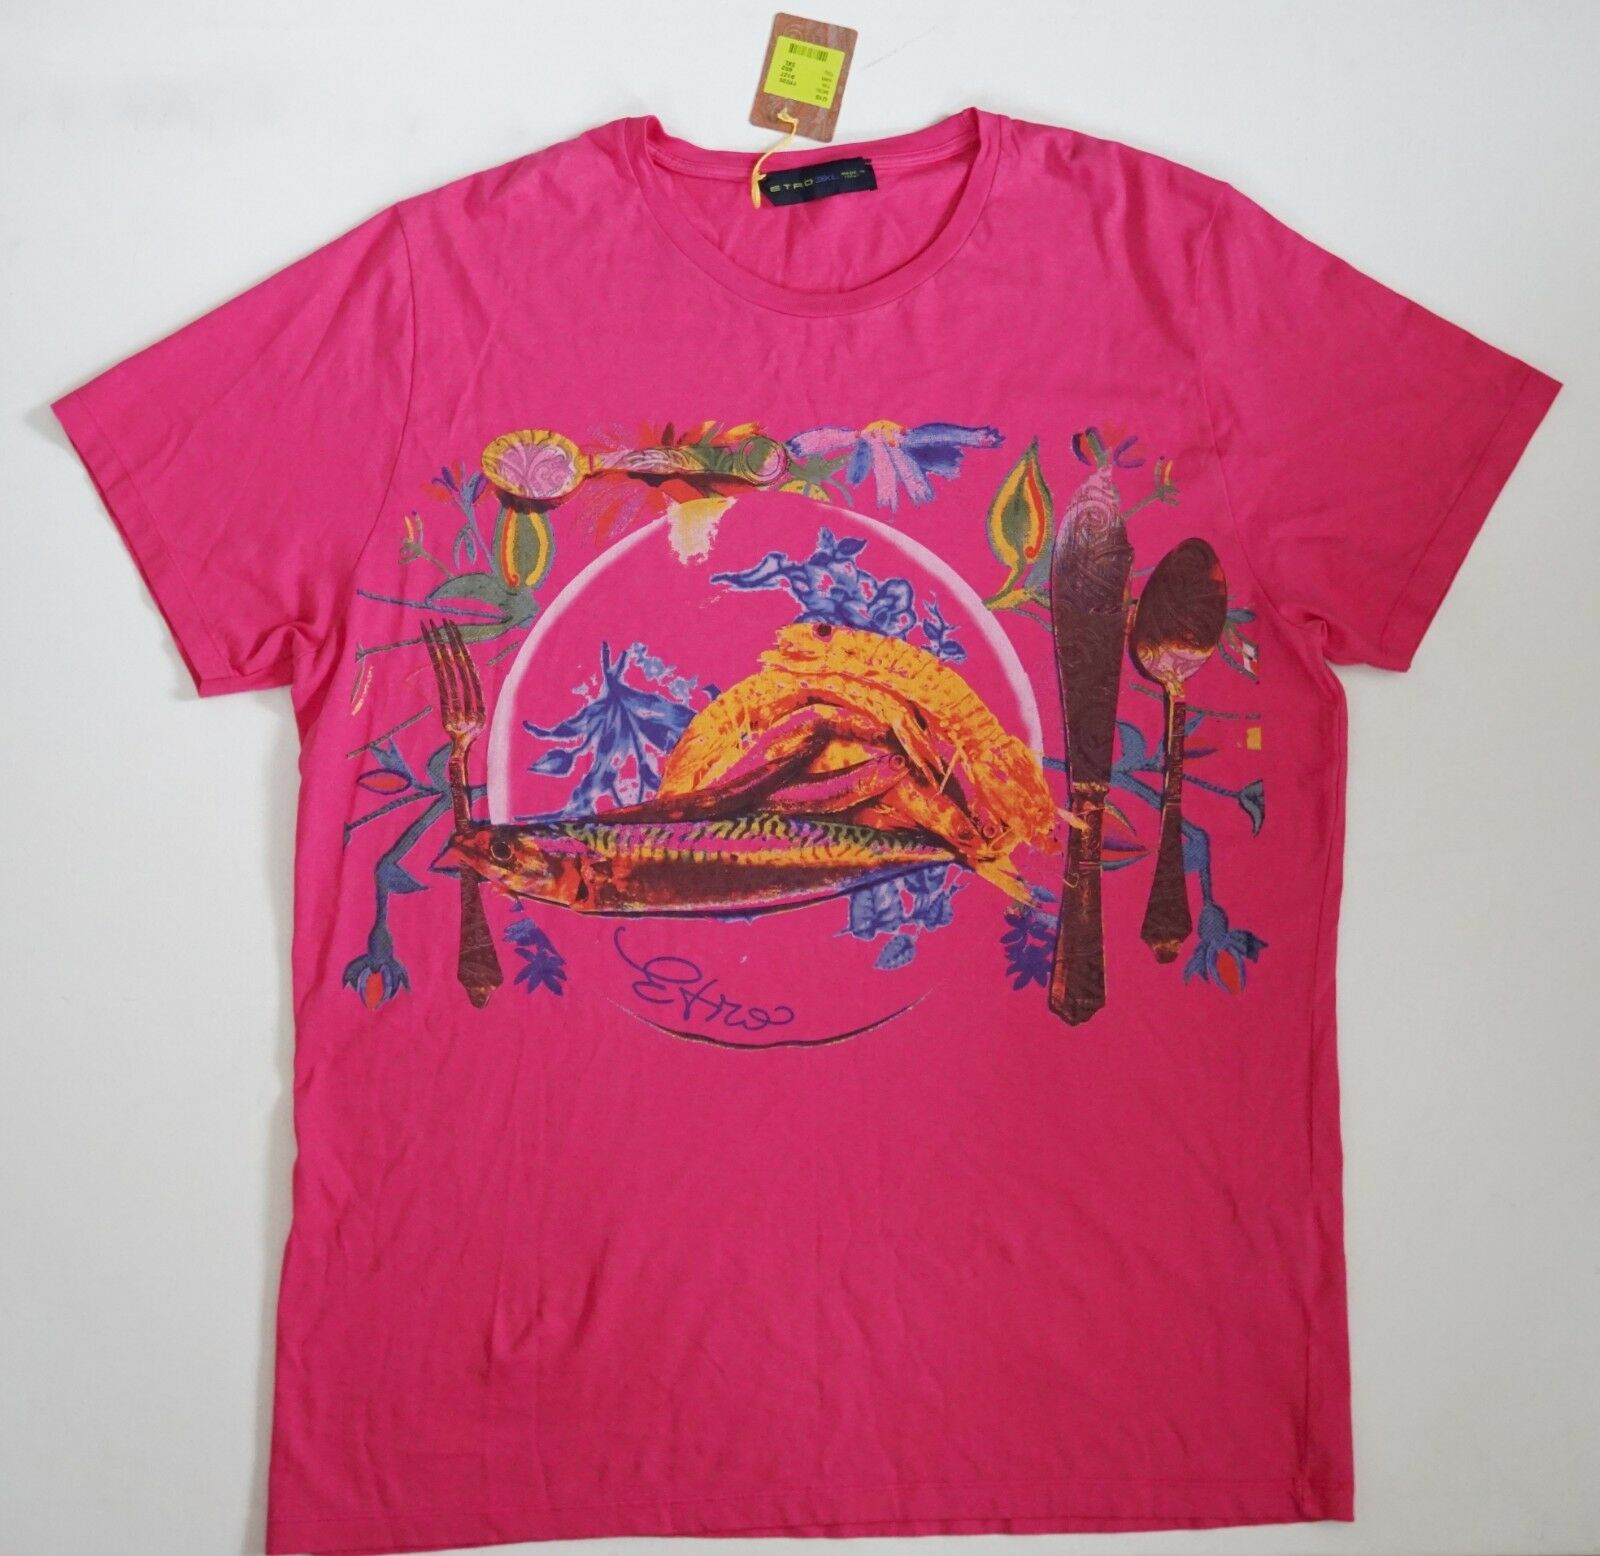 NWT Authentic ETRO Pink Multi 100% Cotton Printed Short-Sleeve T-Shirt 2XL 3XL